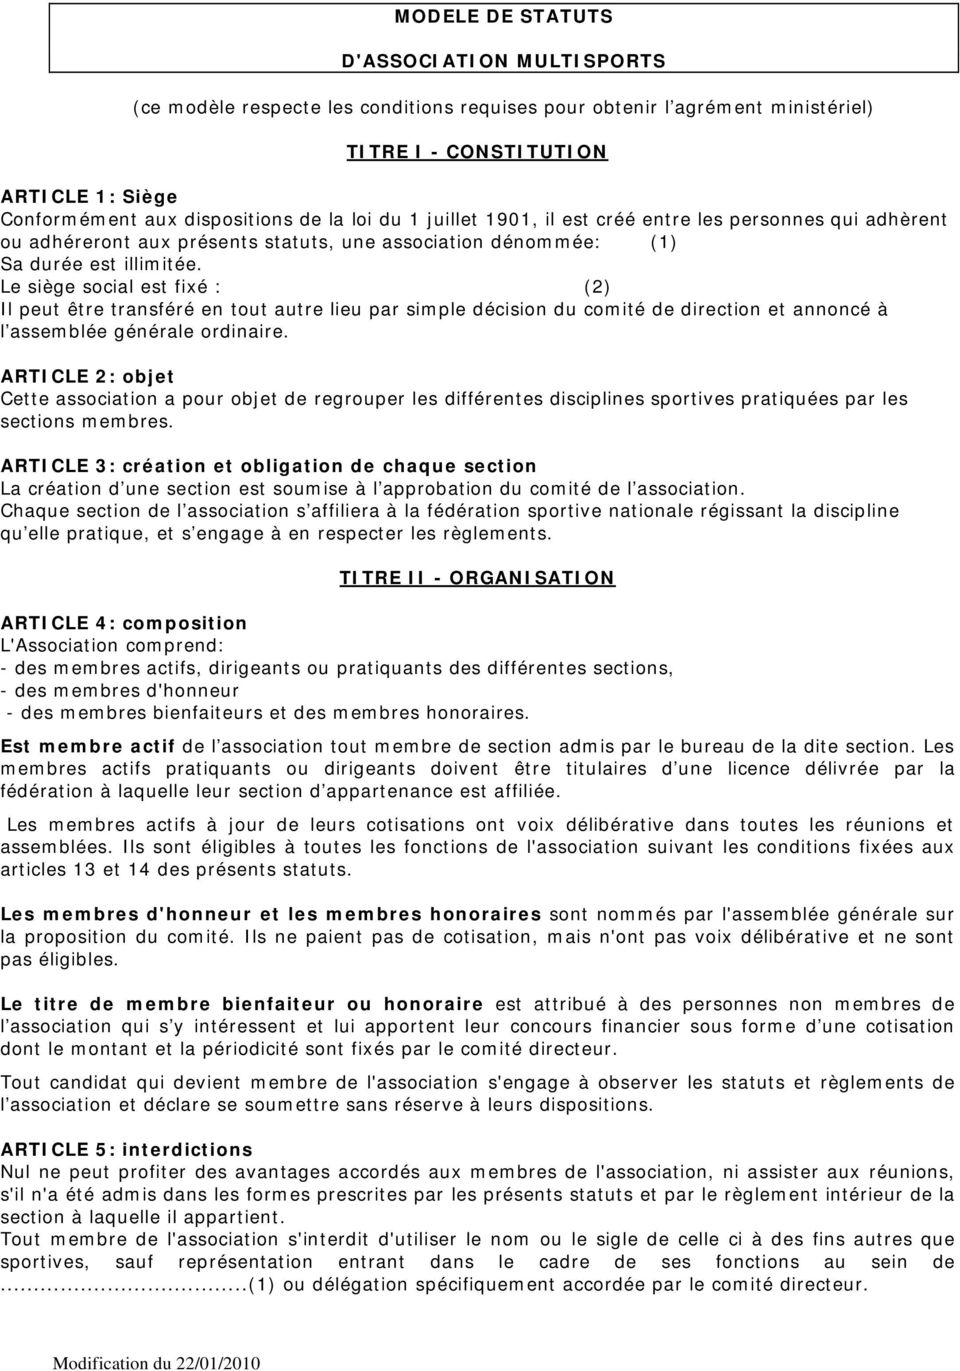 Modele De Statuts D Association Multisports Ce Modele Respecte Les Conditions Requises Pour Obtenir L Agrement Ministeriel Titre I Constitution Pdf Telechargement Gratuit